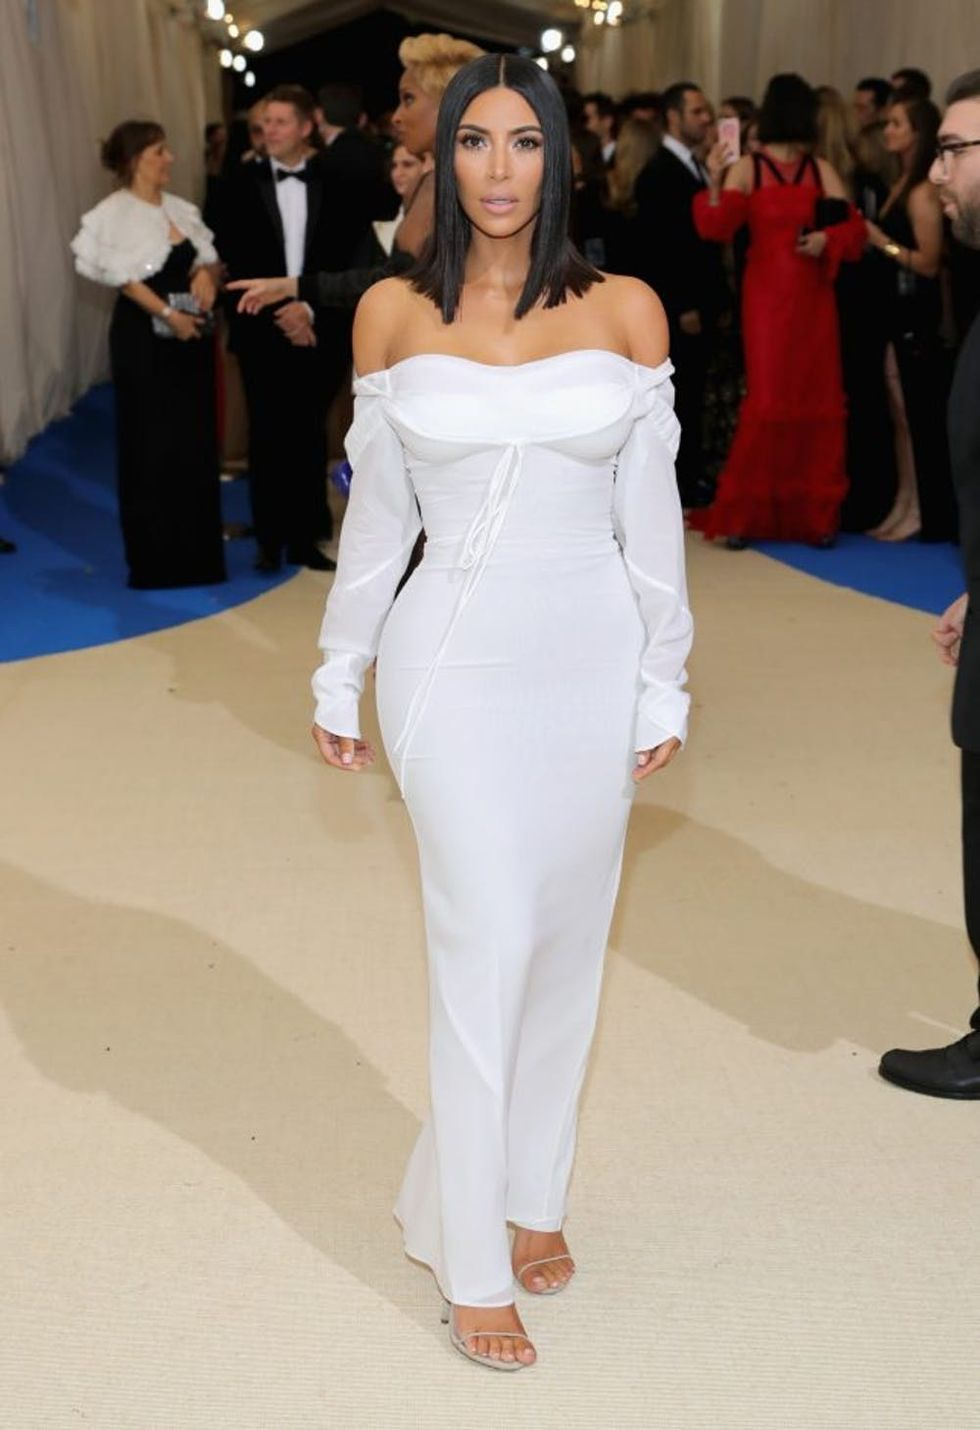 @KimKardashian Gets Candid About Raising Her Kids in the